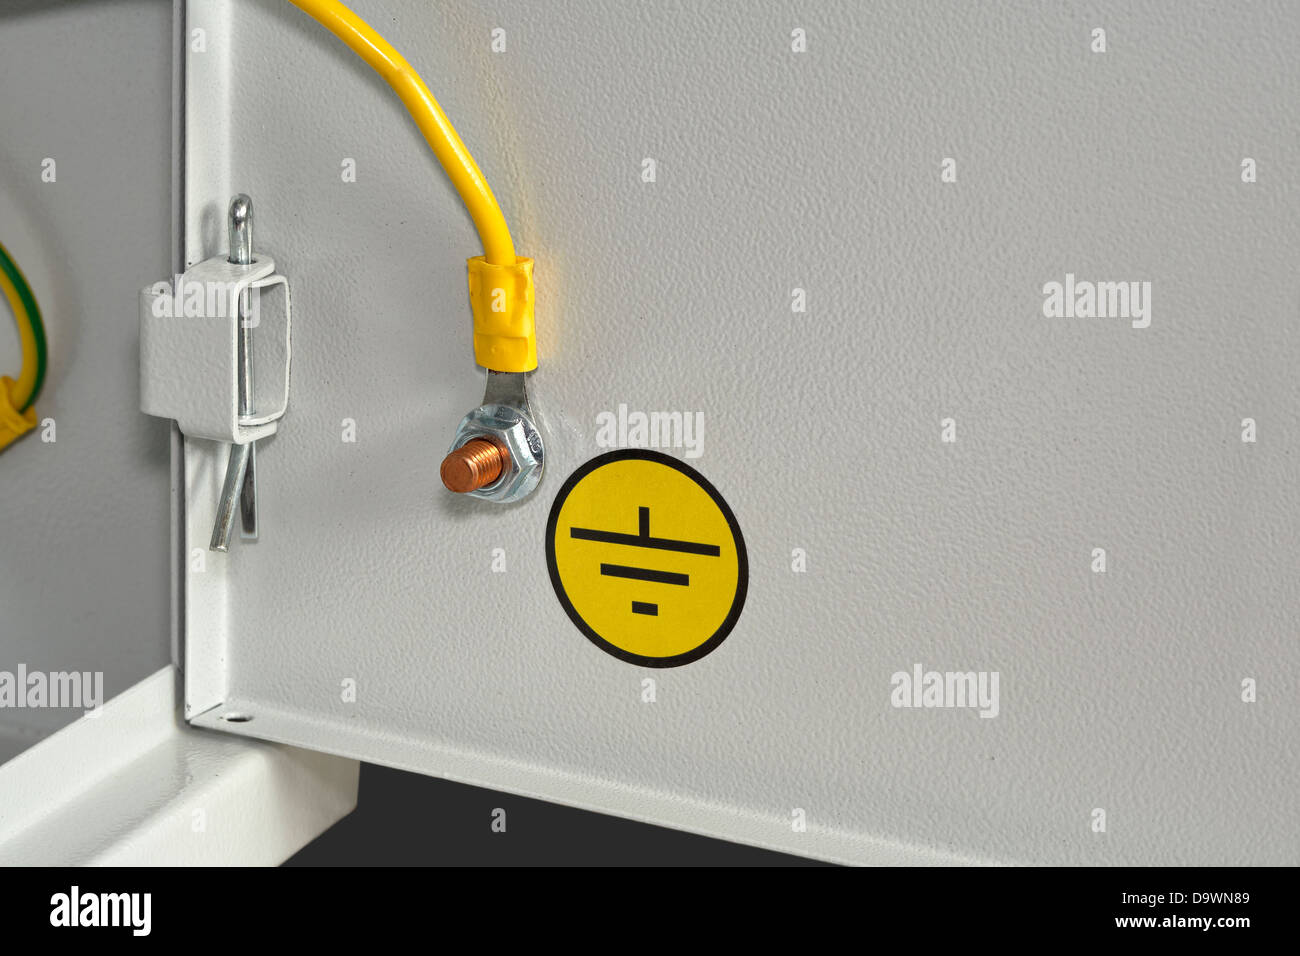 Grounding Stockfotos & Grounding Bilder - Alamy